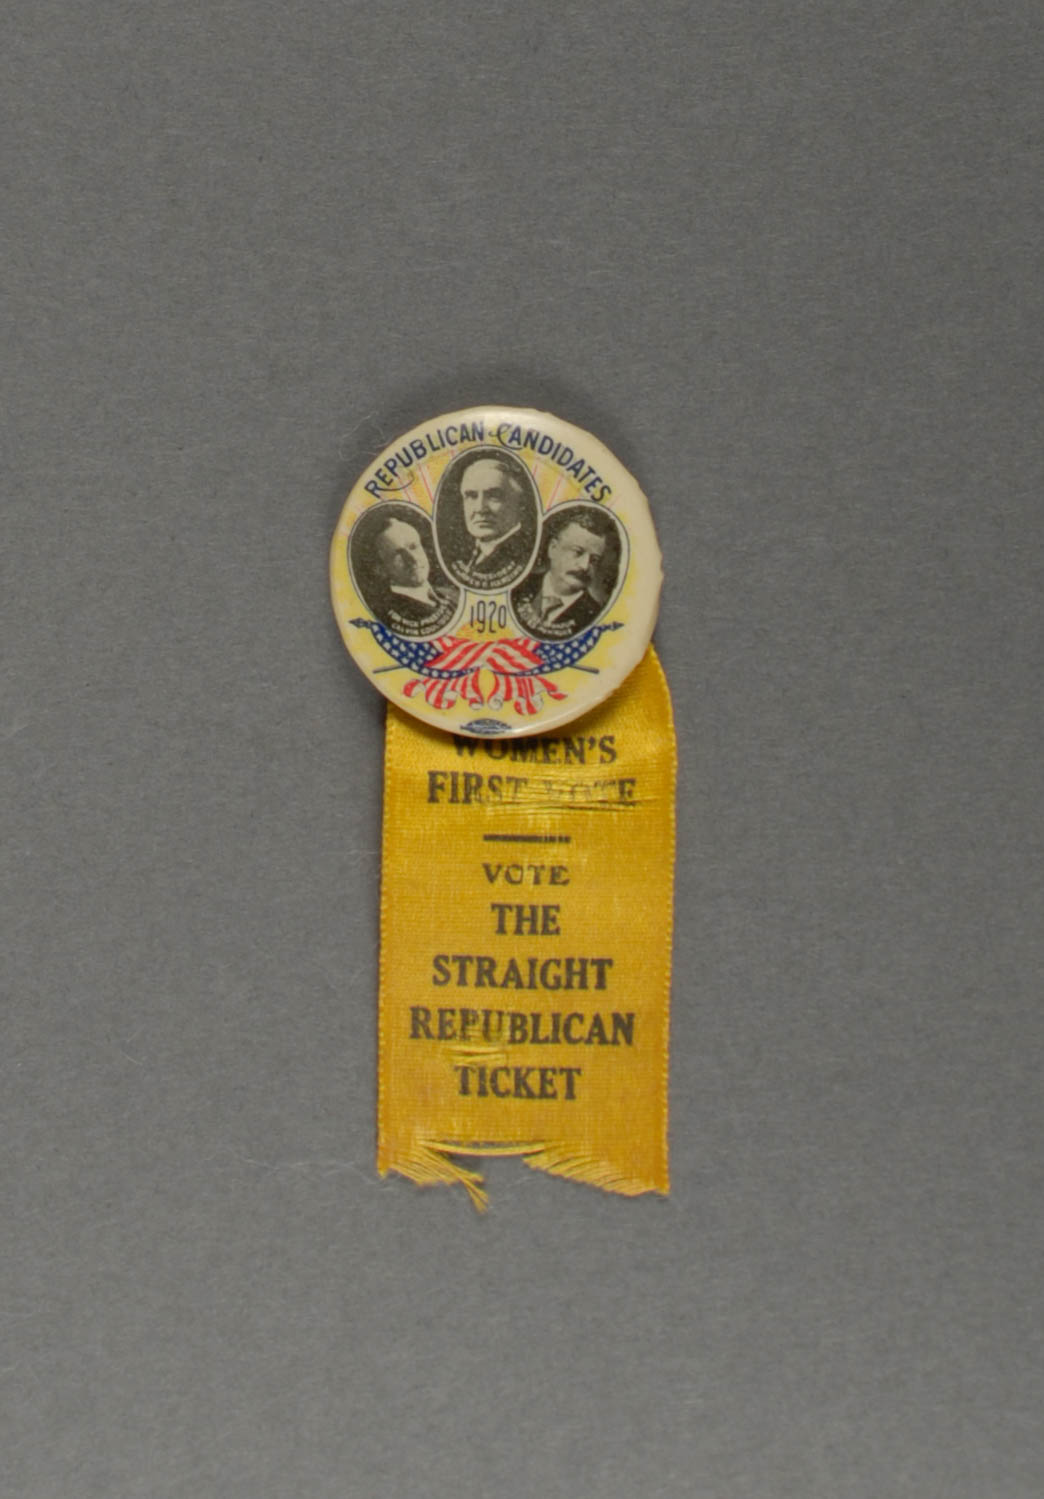 2015.22.720 - Badge from the first Presidential election that all U.S. women were able to vote in. Krasik Collection of Pennsylvania and Presidential Political Memorabilia, Heinz History Center.